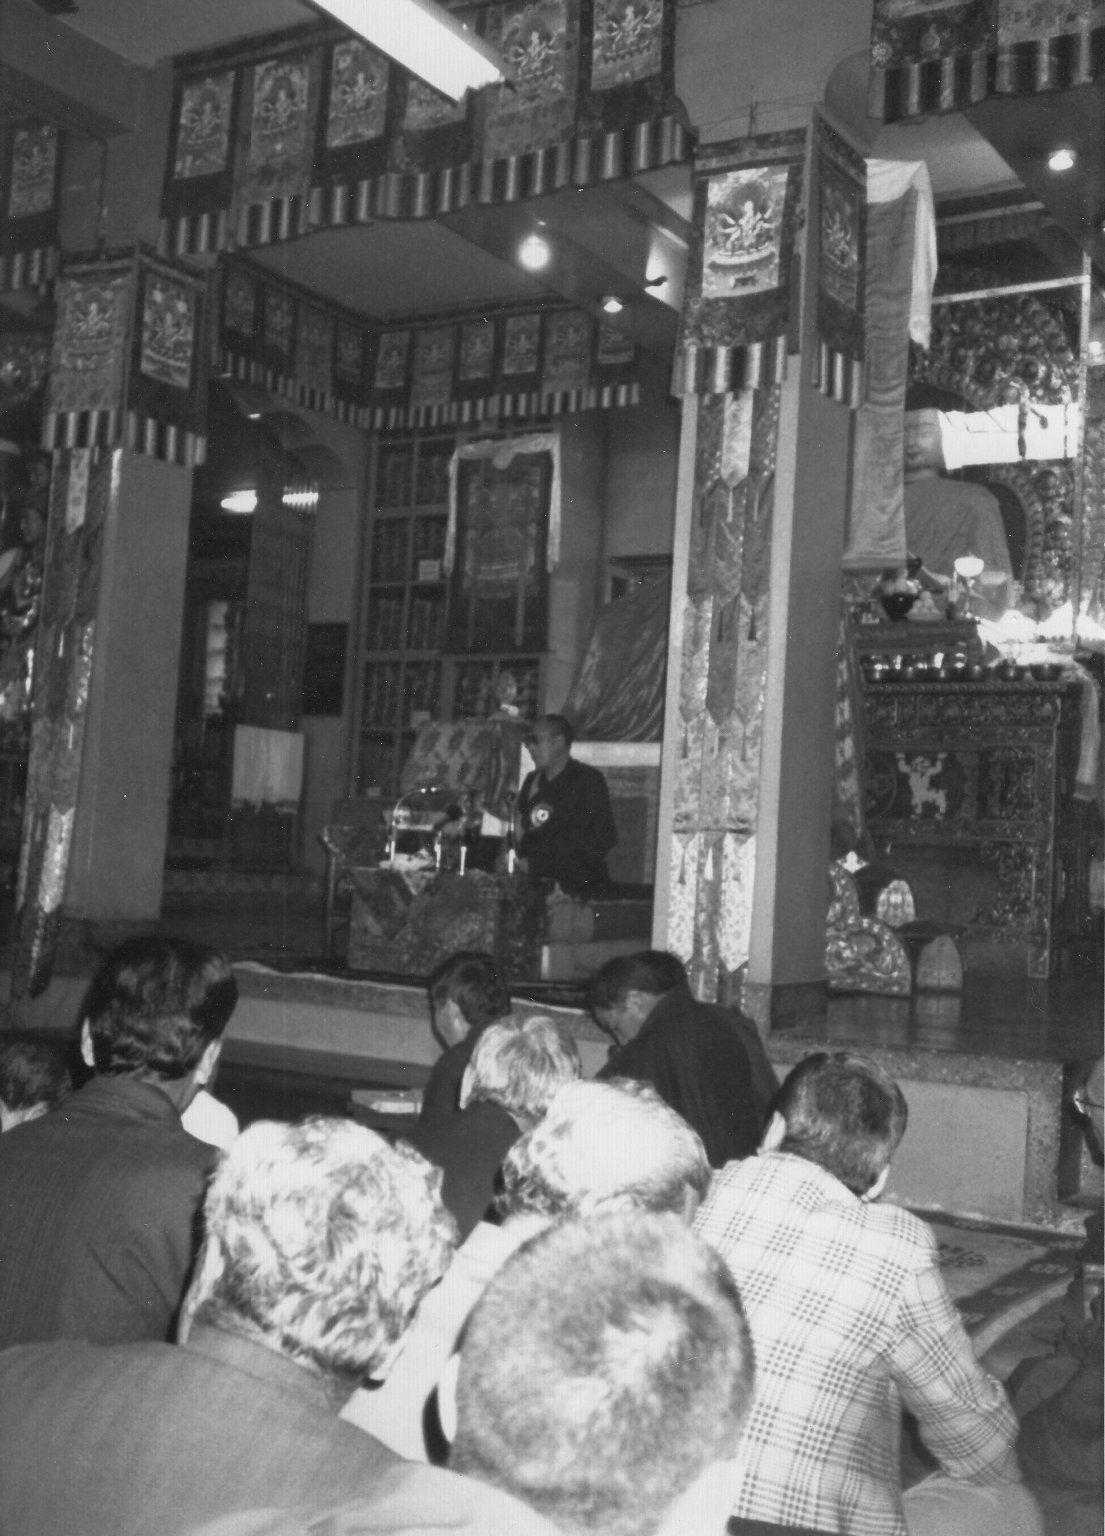 His Holiness Tenzin Gyatso, the 14th Dalai Lama, speaking to an audience, Fall 1990.